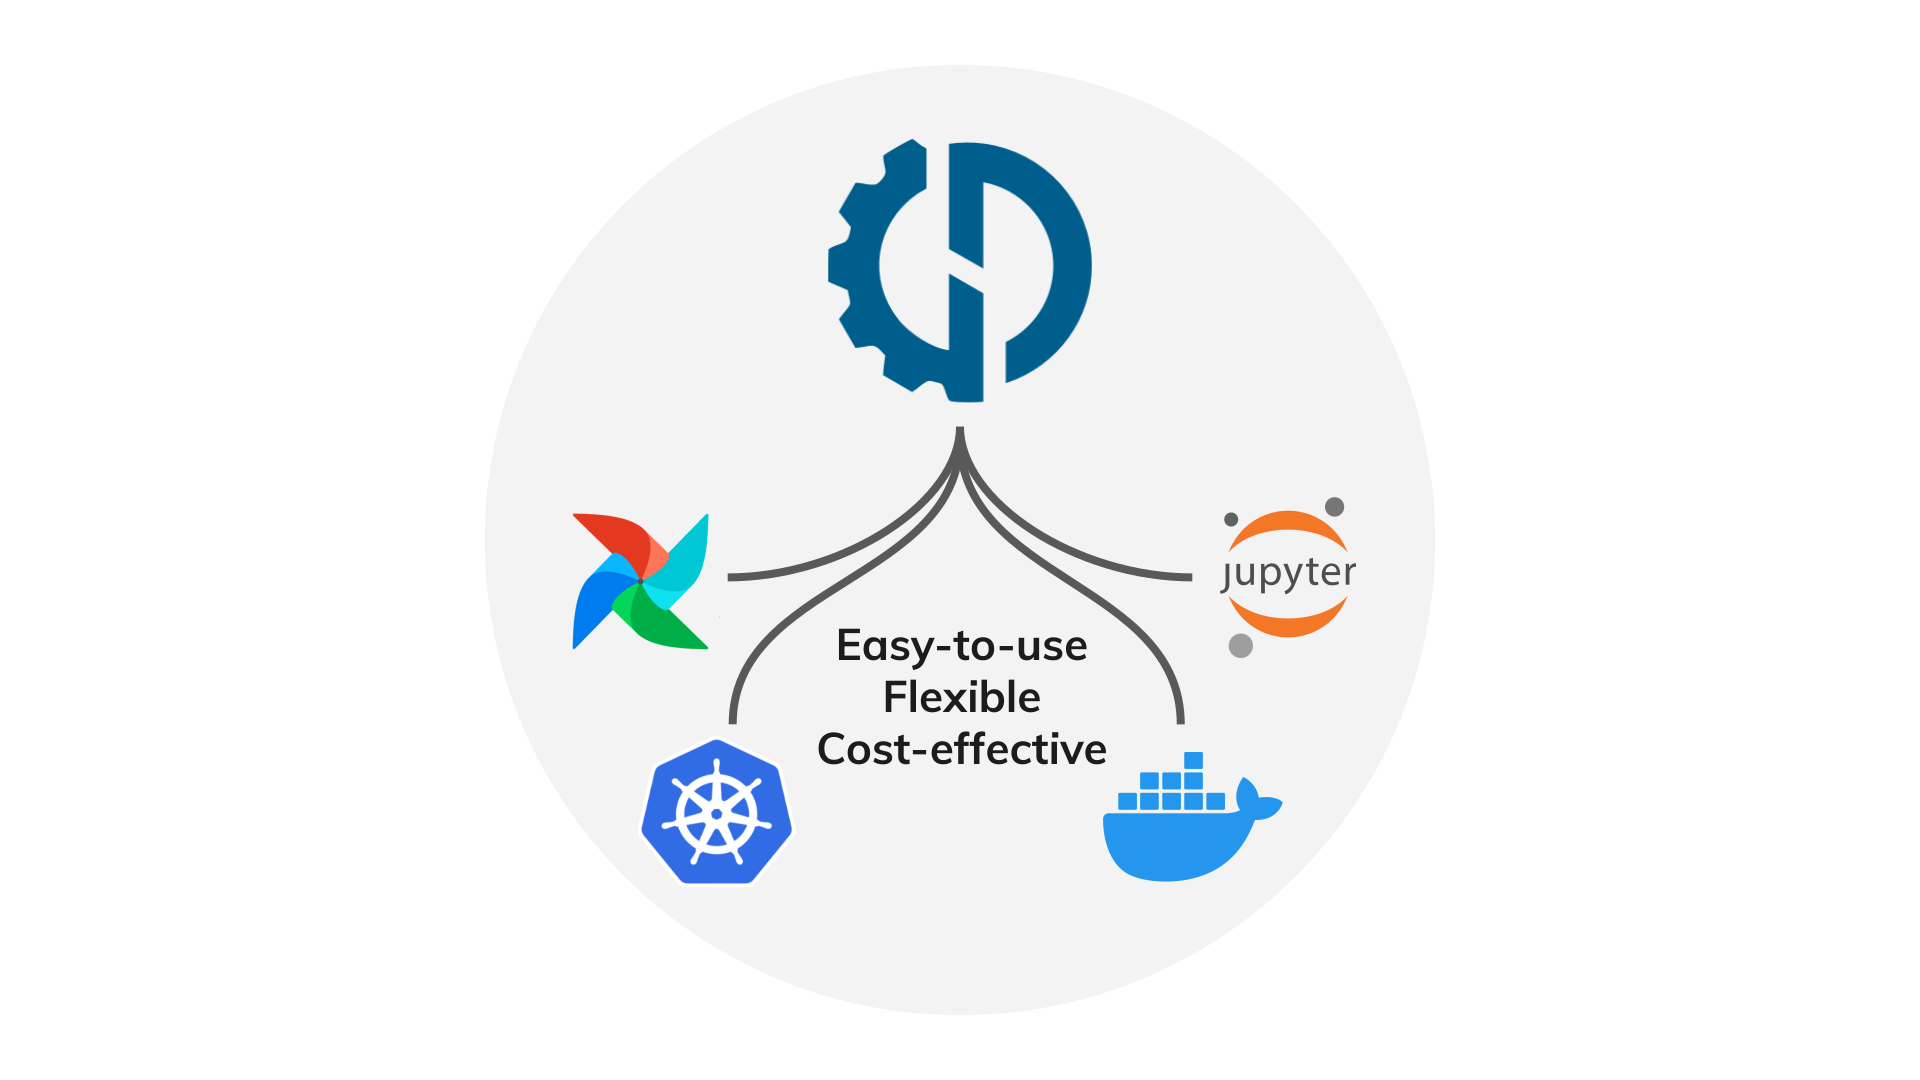 Data Mechanics' Native Integrations With Jupyter, Docker, Kubernetes, Airflow